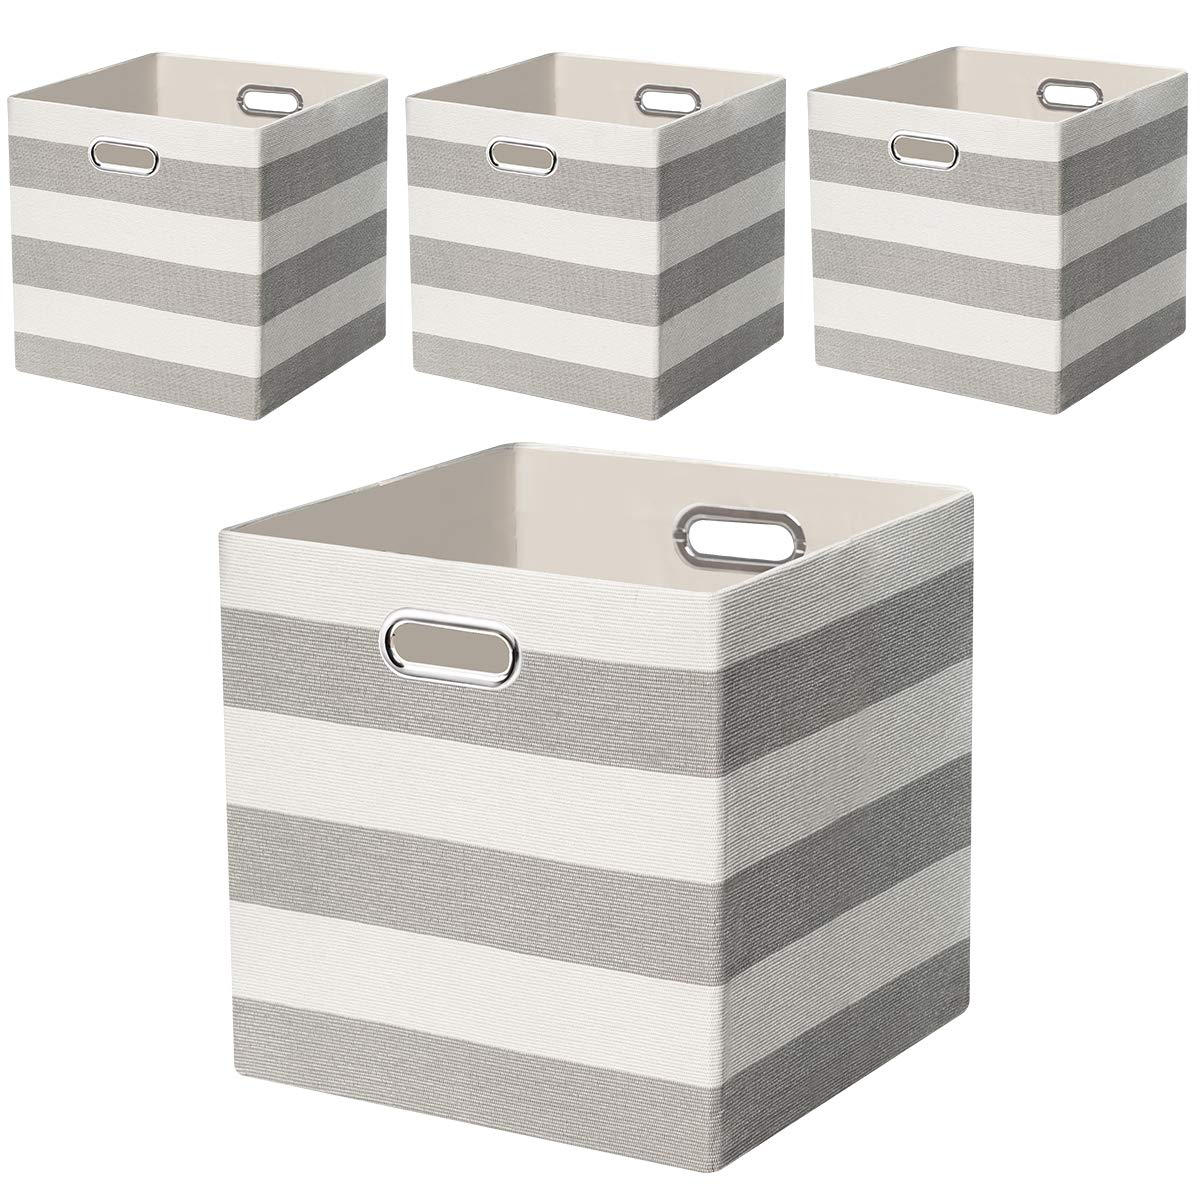 Posprica Storage Bins Storage Cubes, 13×13 Fabric Storage Boxes Baskets Containers Drawers for Nurseries,Offices,Closets,Home Décor - 4pcs,Grey-White Striped by Posprica